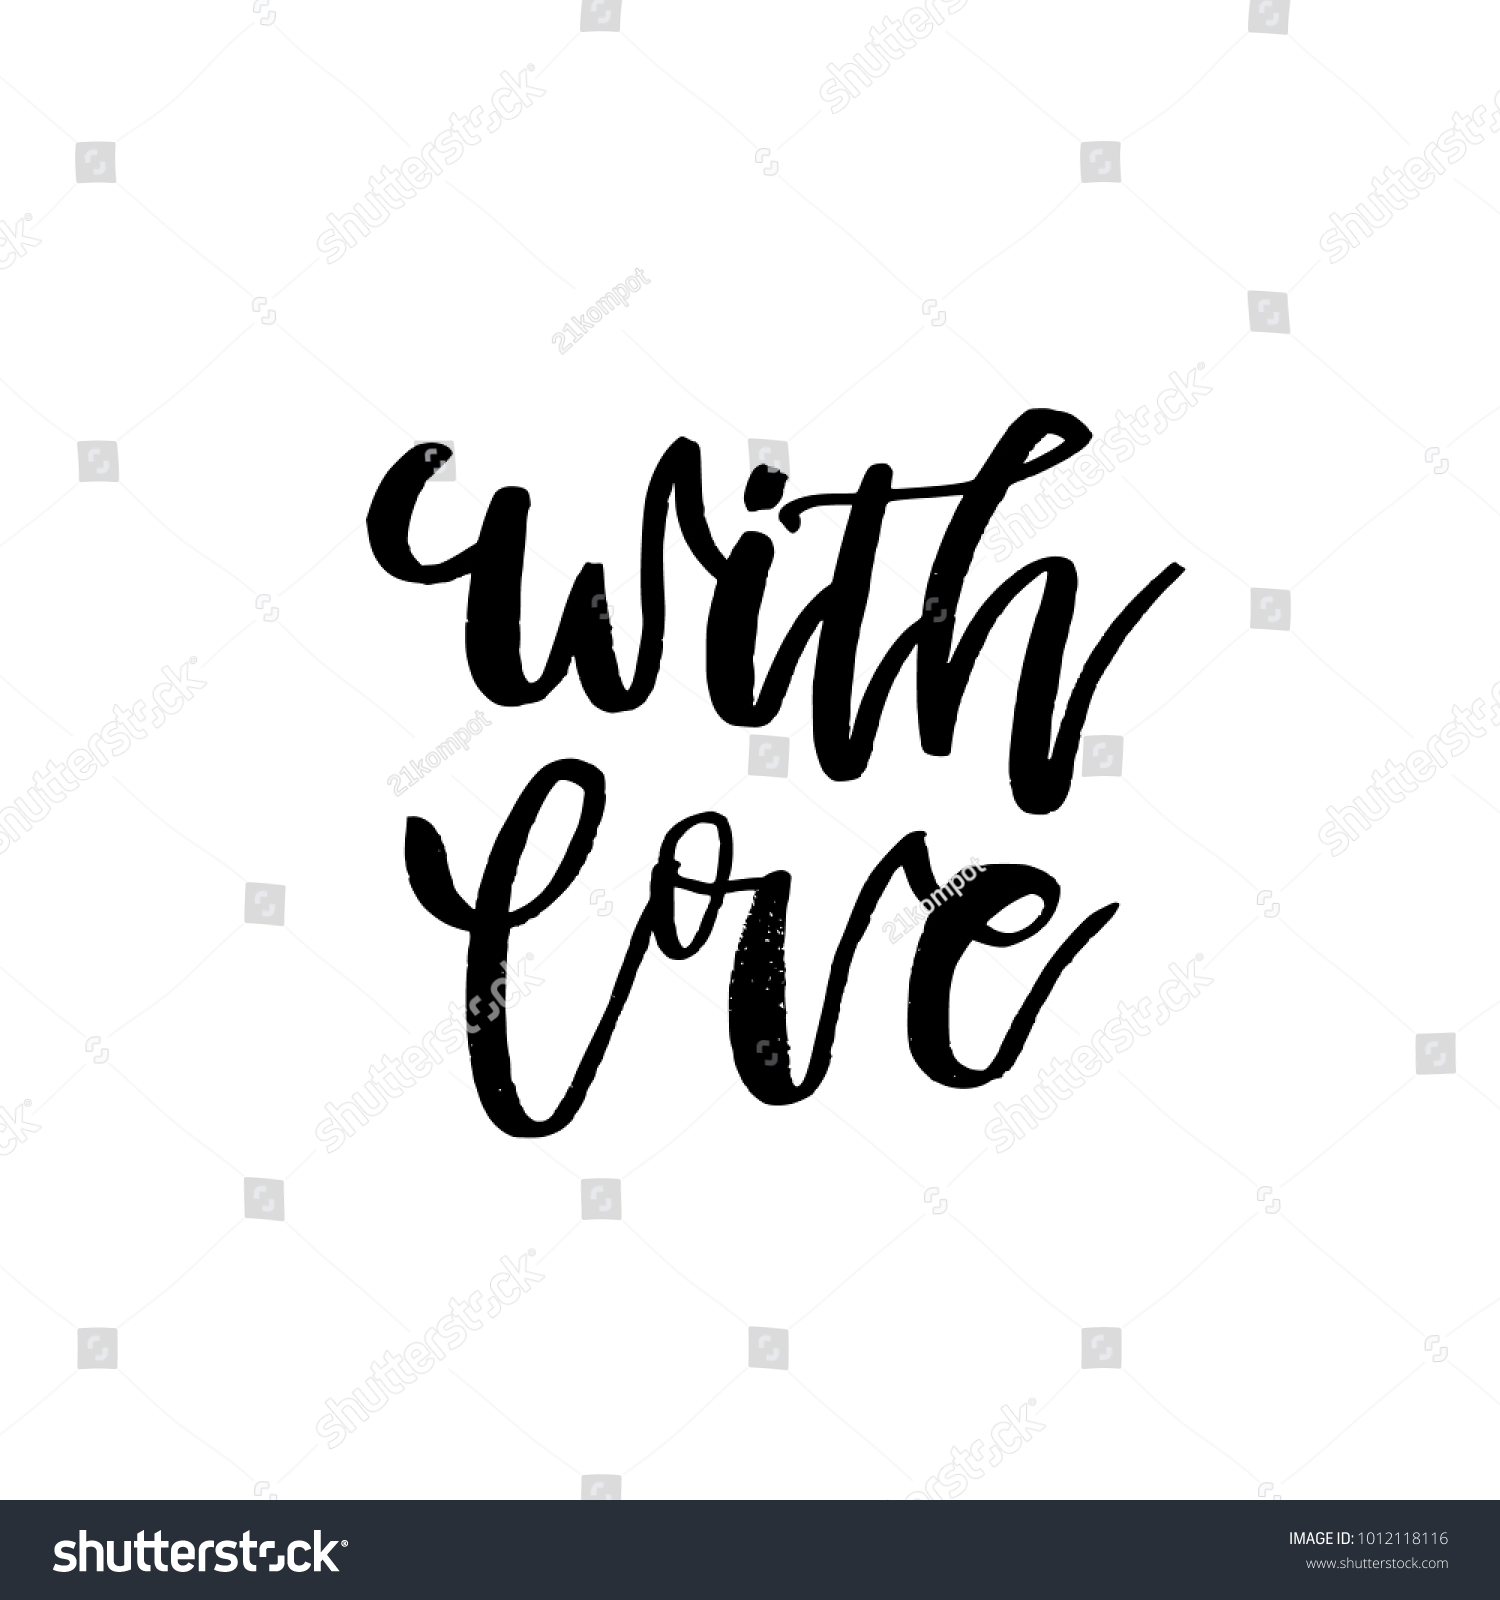 Love happy valentines day card calligraphy stock vector 1012118116 with love happy valentines day card with calligraphy text on white template for greetings kristyandbryce Image collections